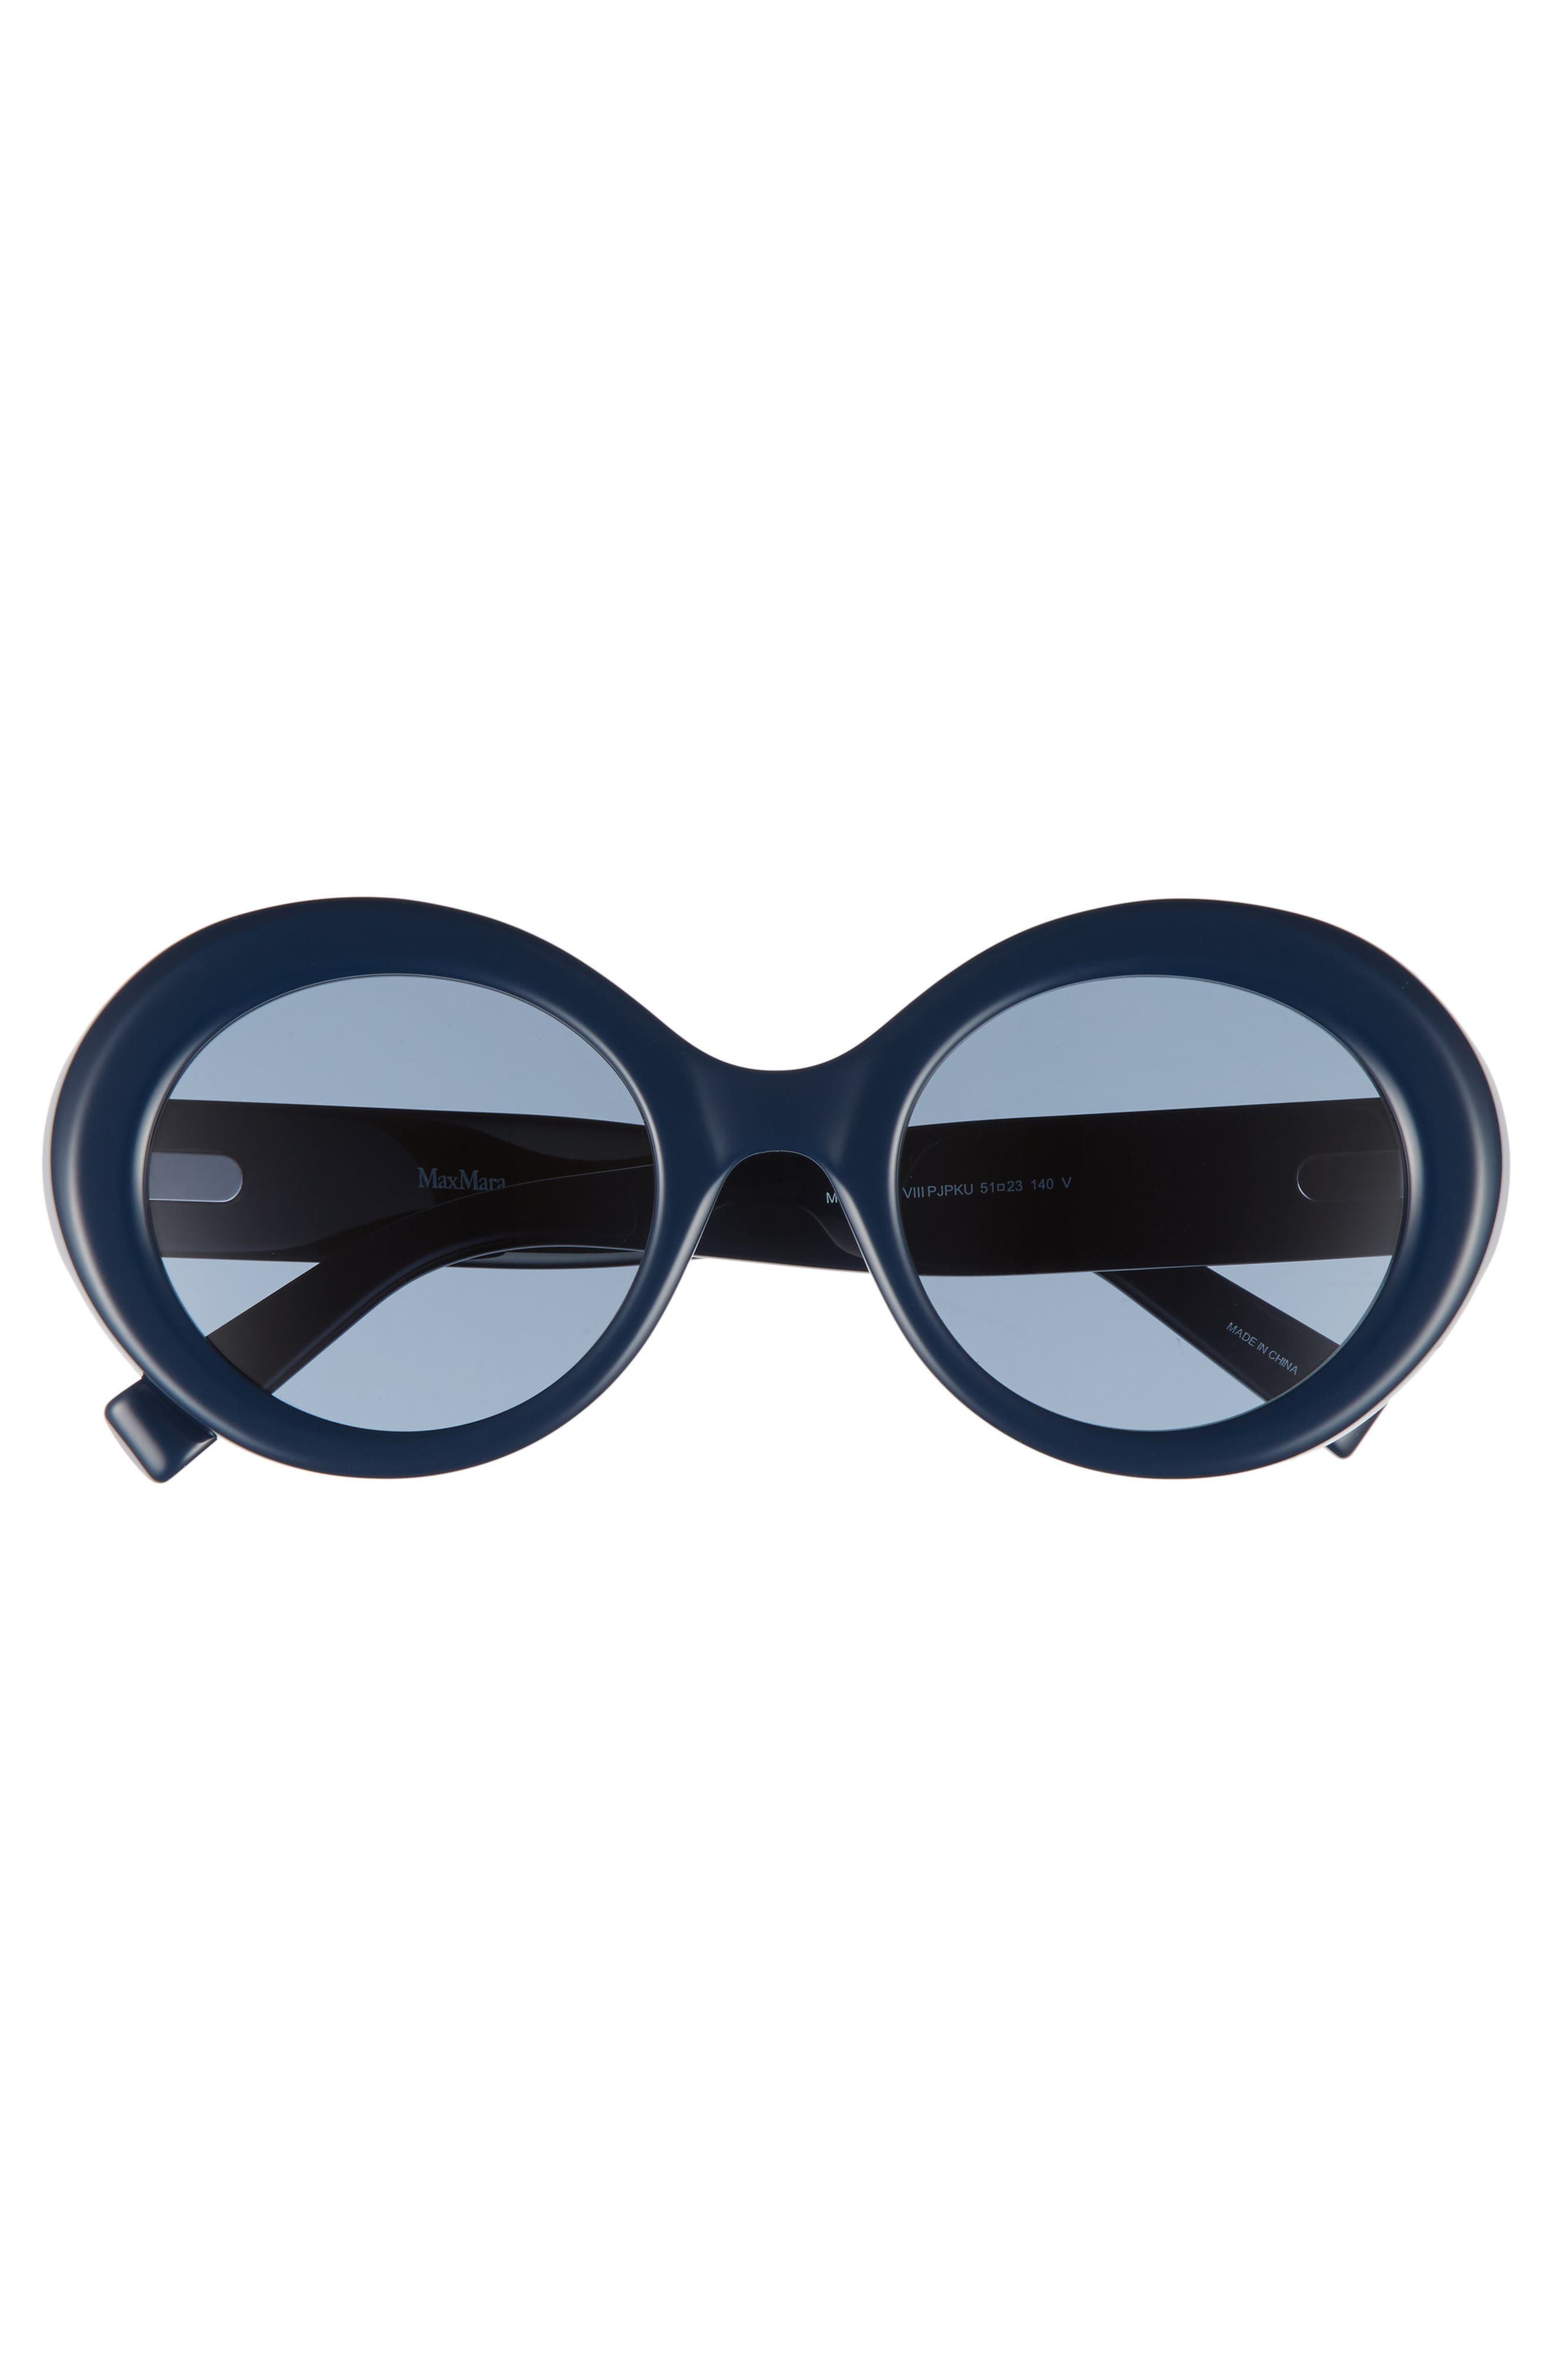 Prism VIII 51mm Oval Sunglasses,                             Alternate thumbnail 3, color,                             Blue